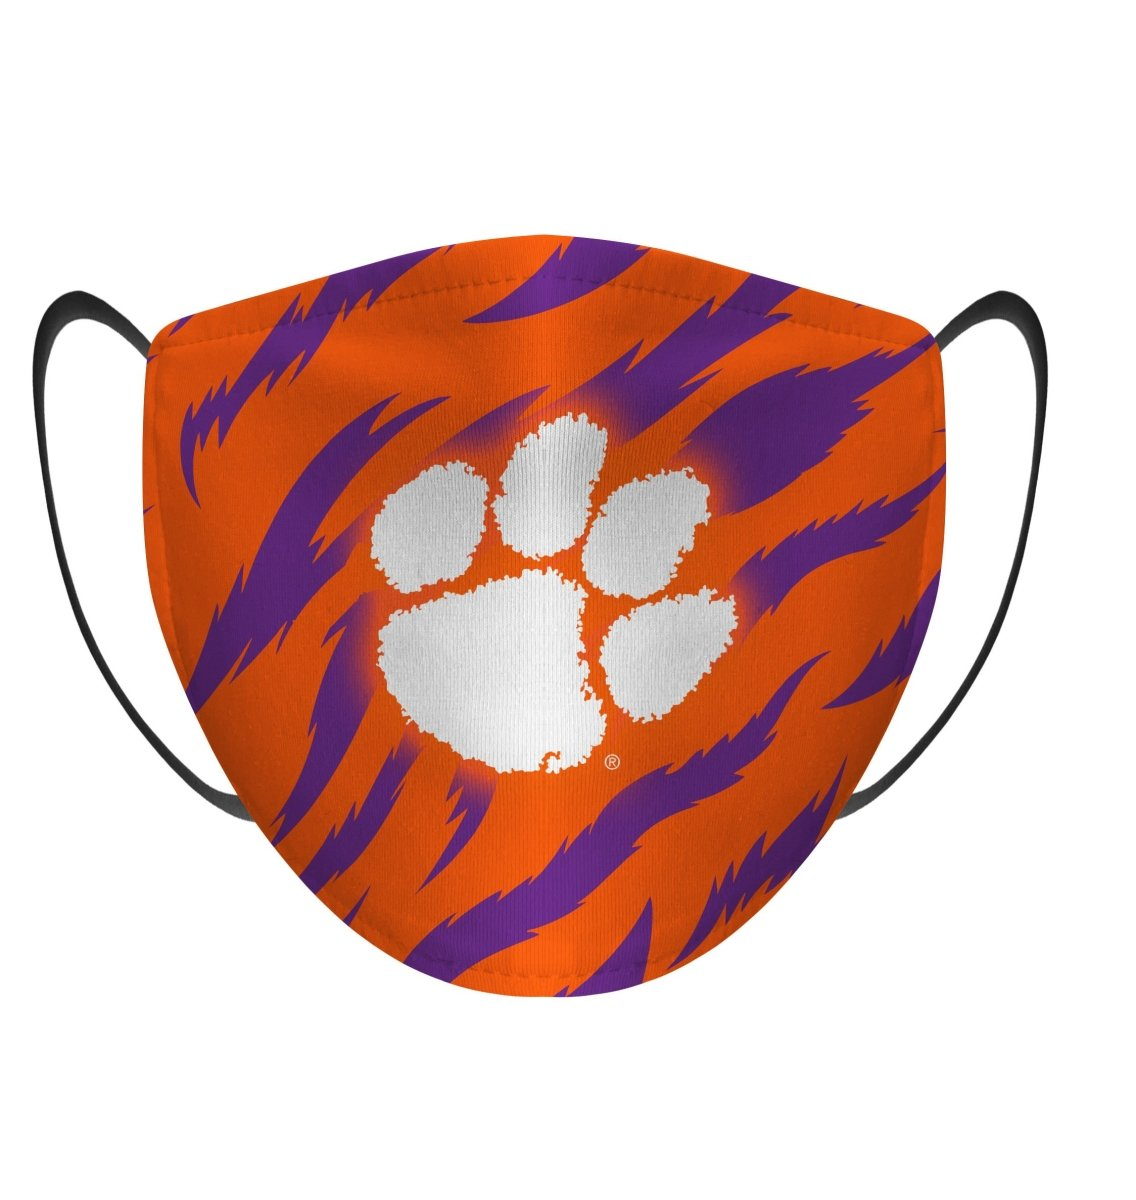 Rock 'Em Face Mask- Orange and Purple Tiger Stripe with White Paw - Mr. Knickerbocker